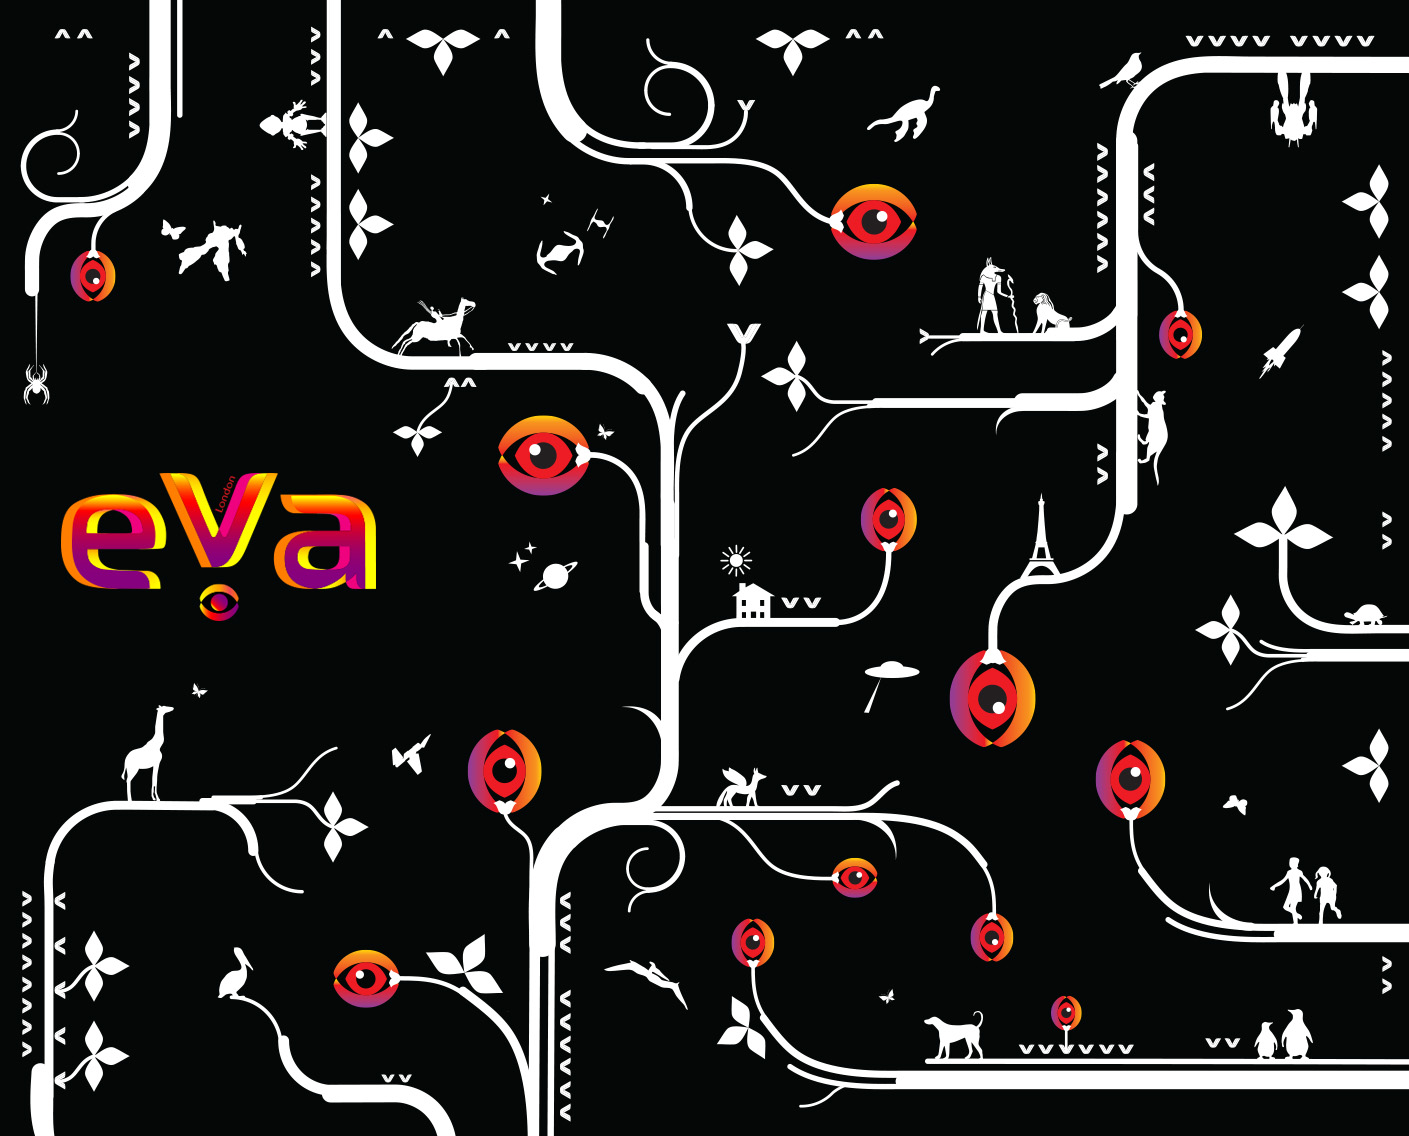 Branding Identity for EVA London conference by Color.Zone branding team.